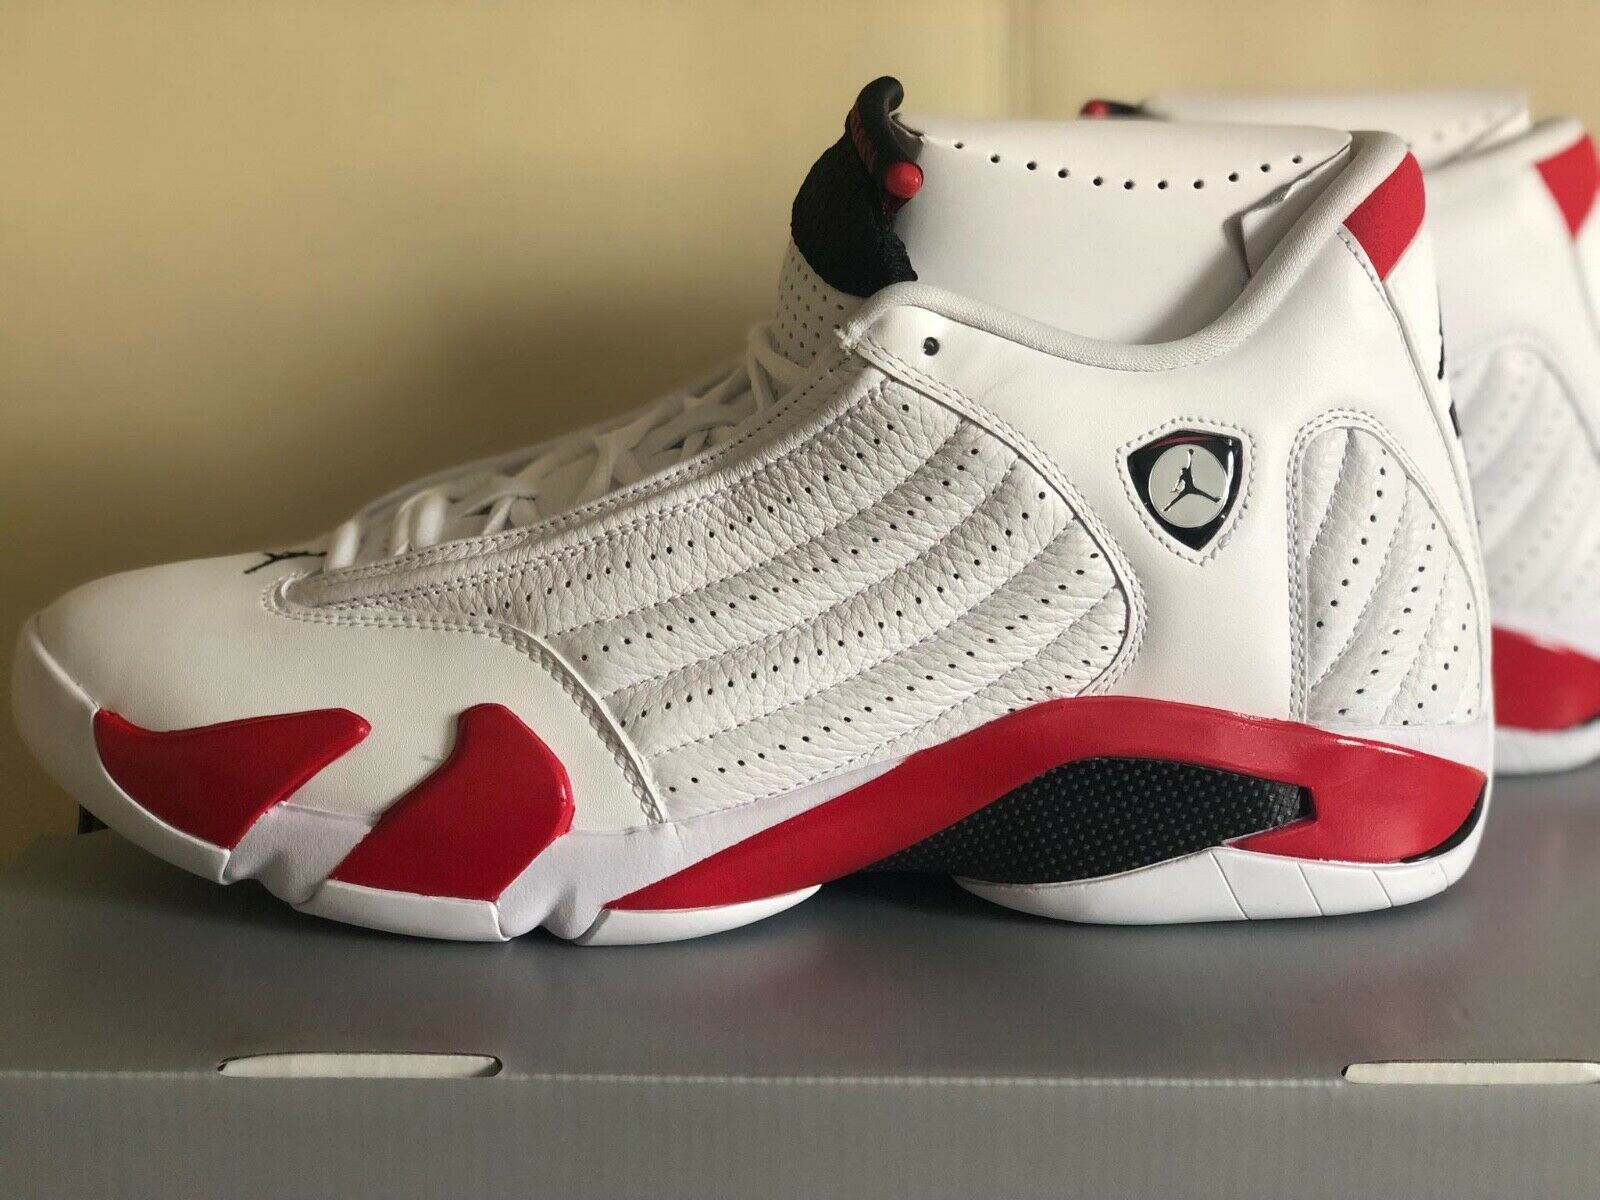 Air Jordan XIV 14 Retro OG Rip Hamilton 487471-100 Candy Cane Basketball shoes